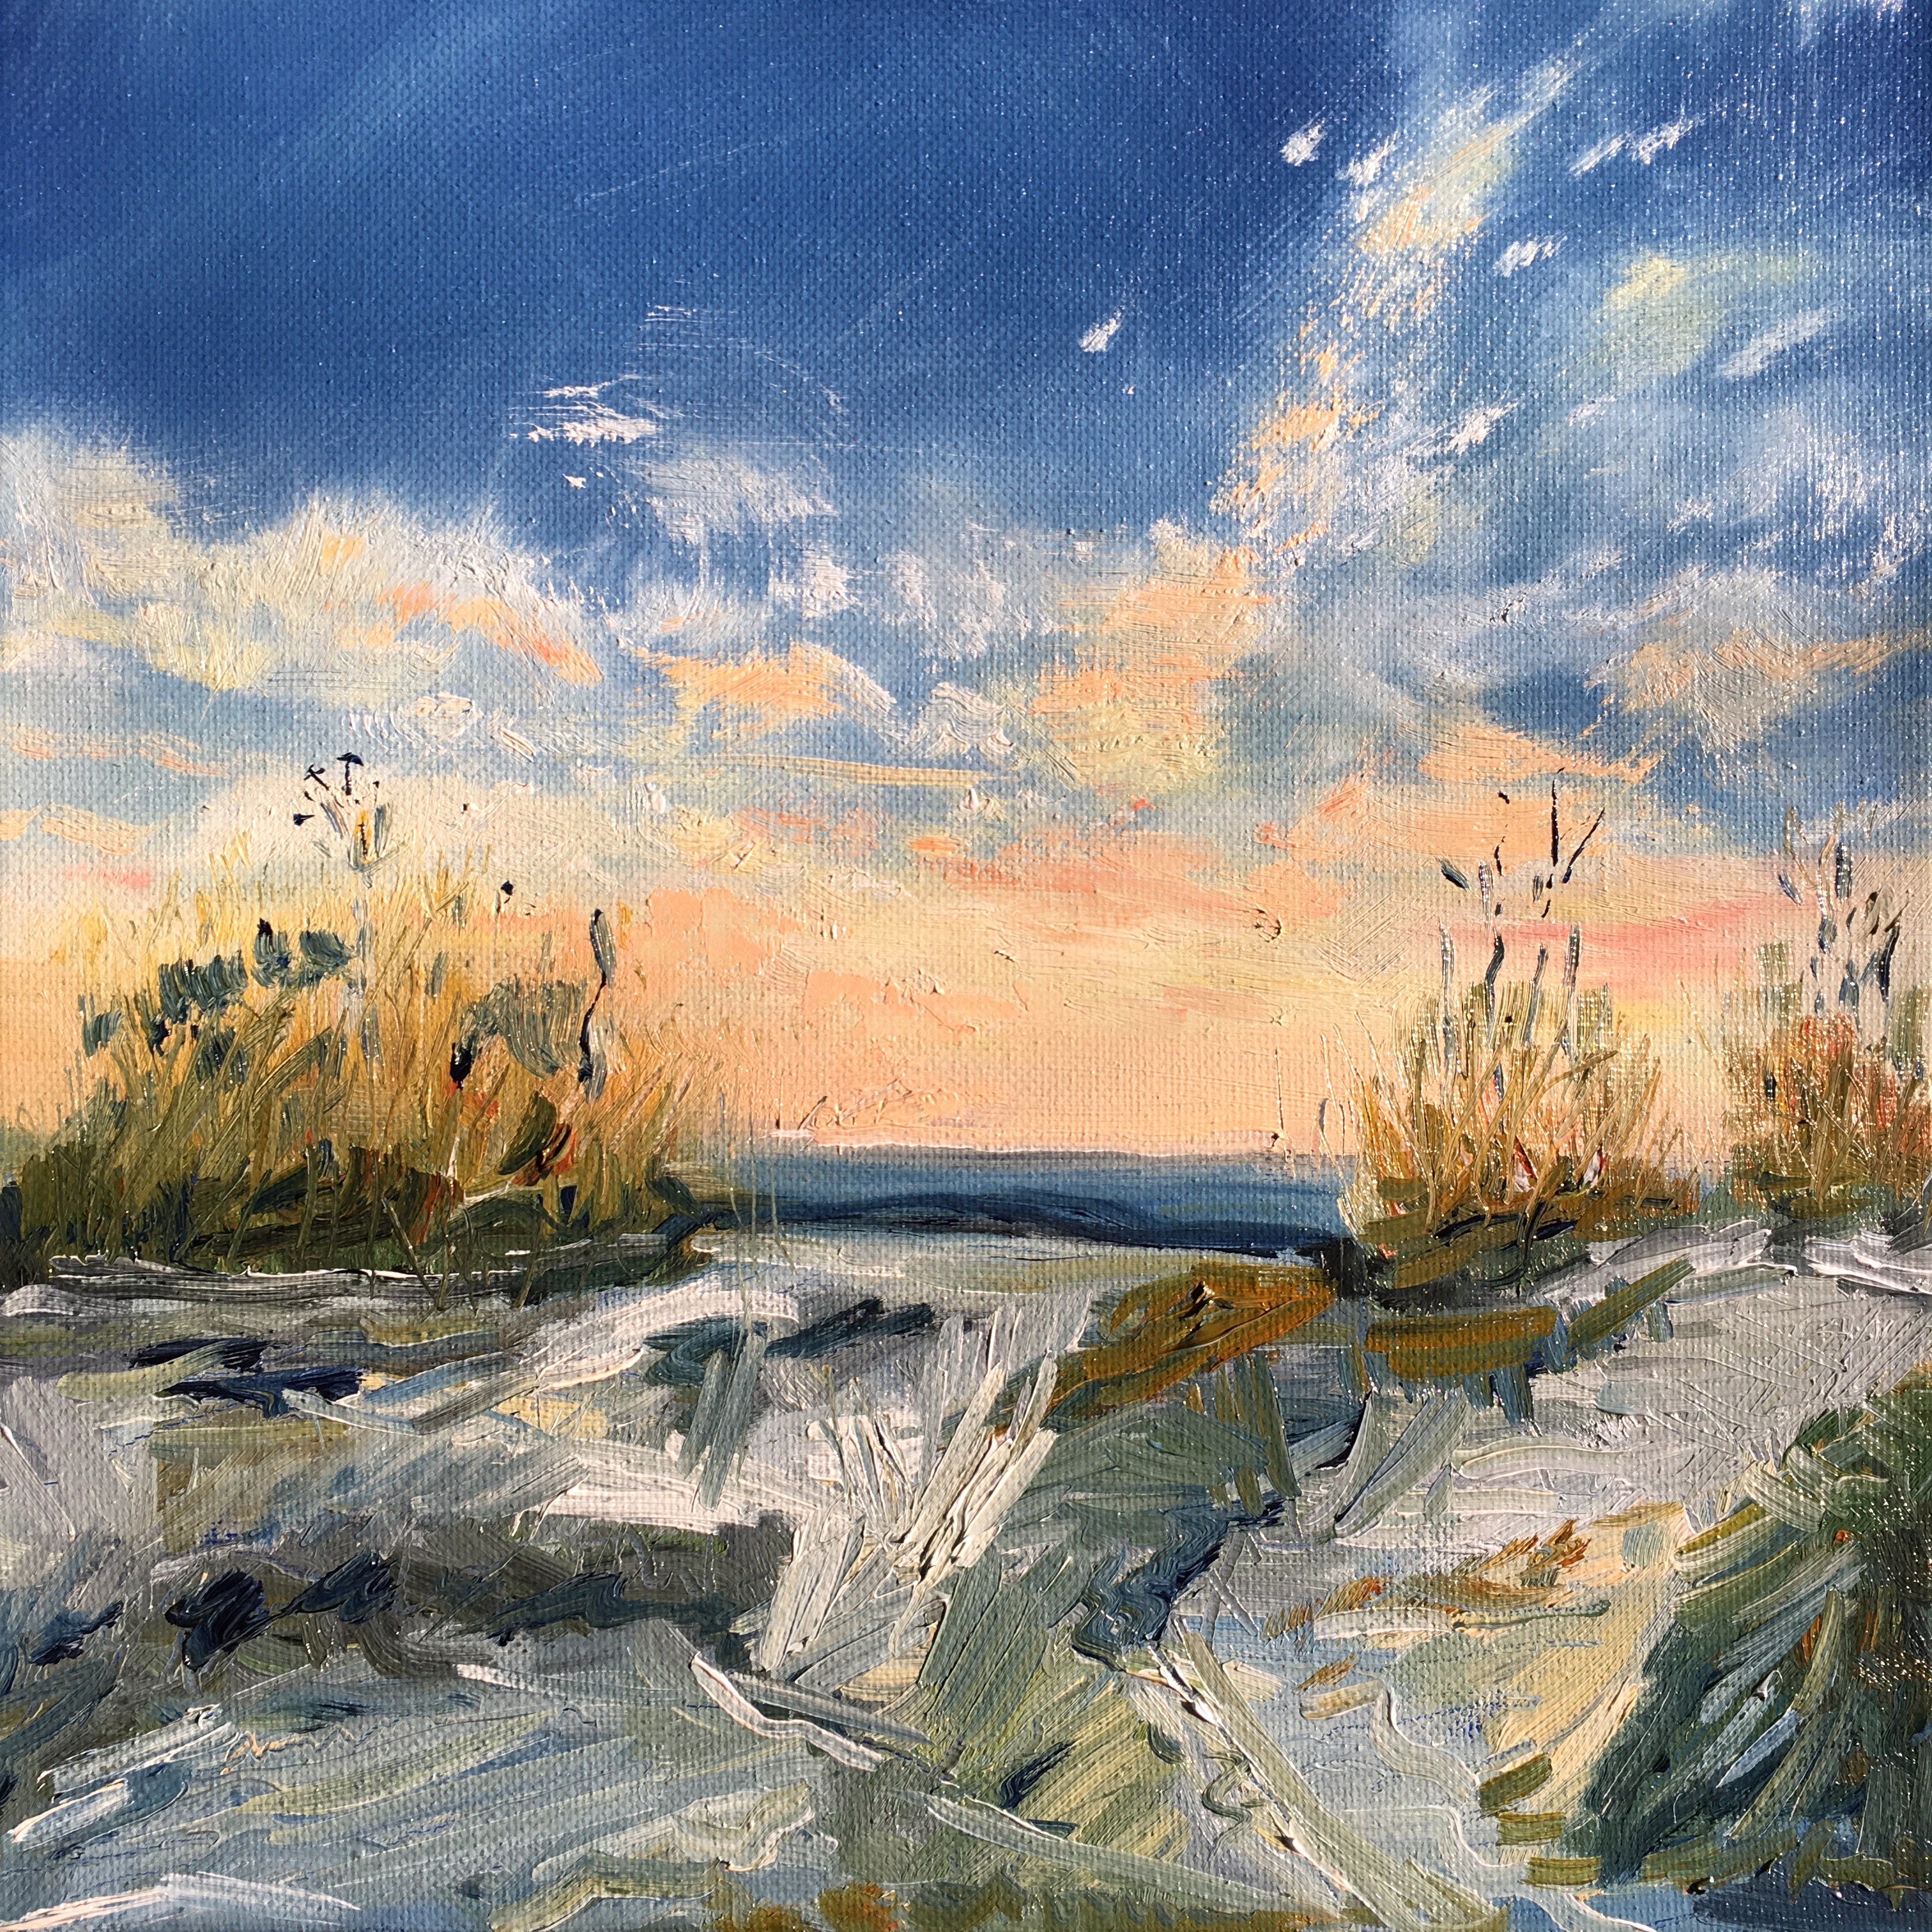 Sketches in Oil – Grasses on a Beach